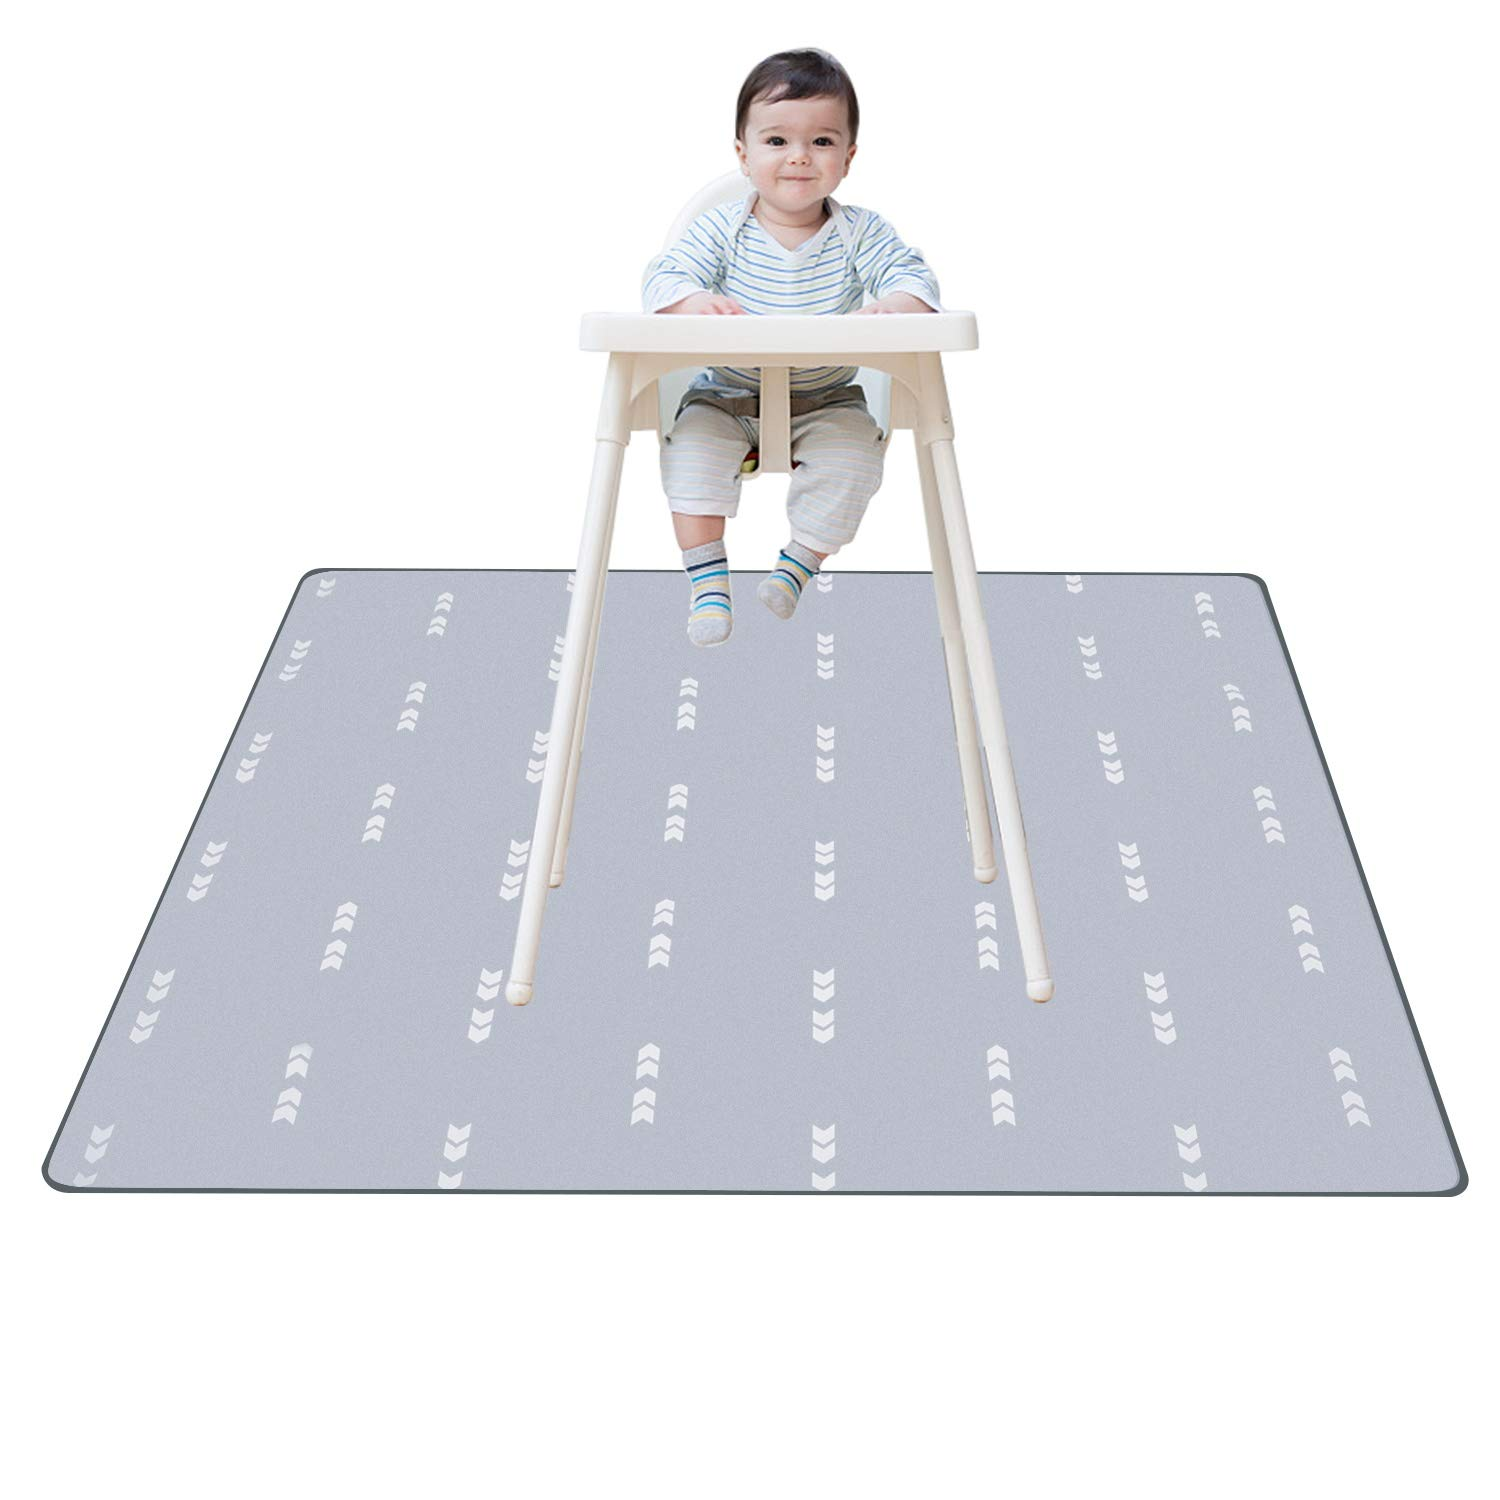 Splat Mat for Under High Chair Floor Mat Baby Waterproof Anti-Slip Splash Mess Mat Portable Play Mat and Table Cloth Gray 51'' by UBBCARE